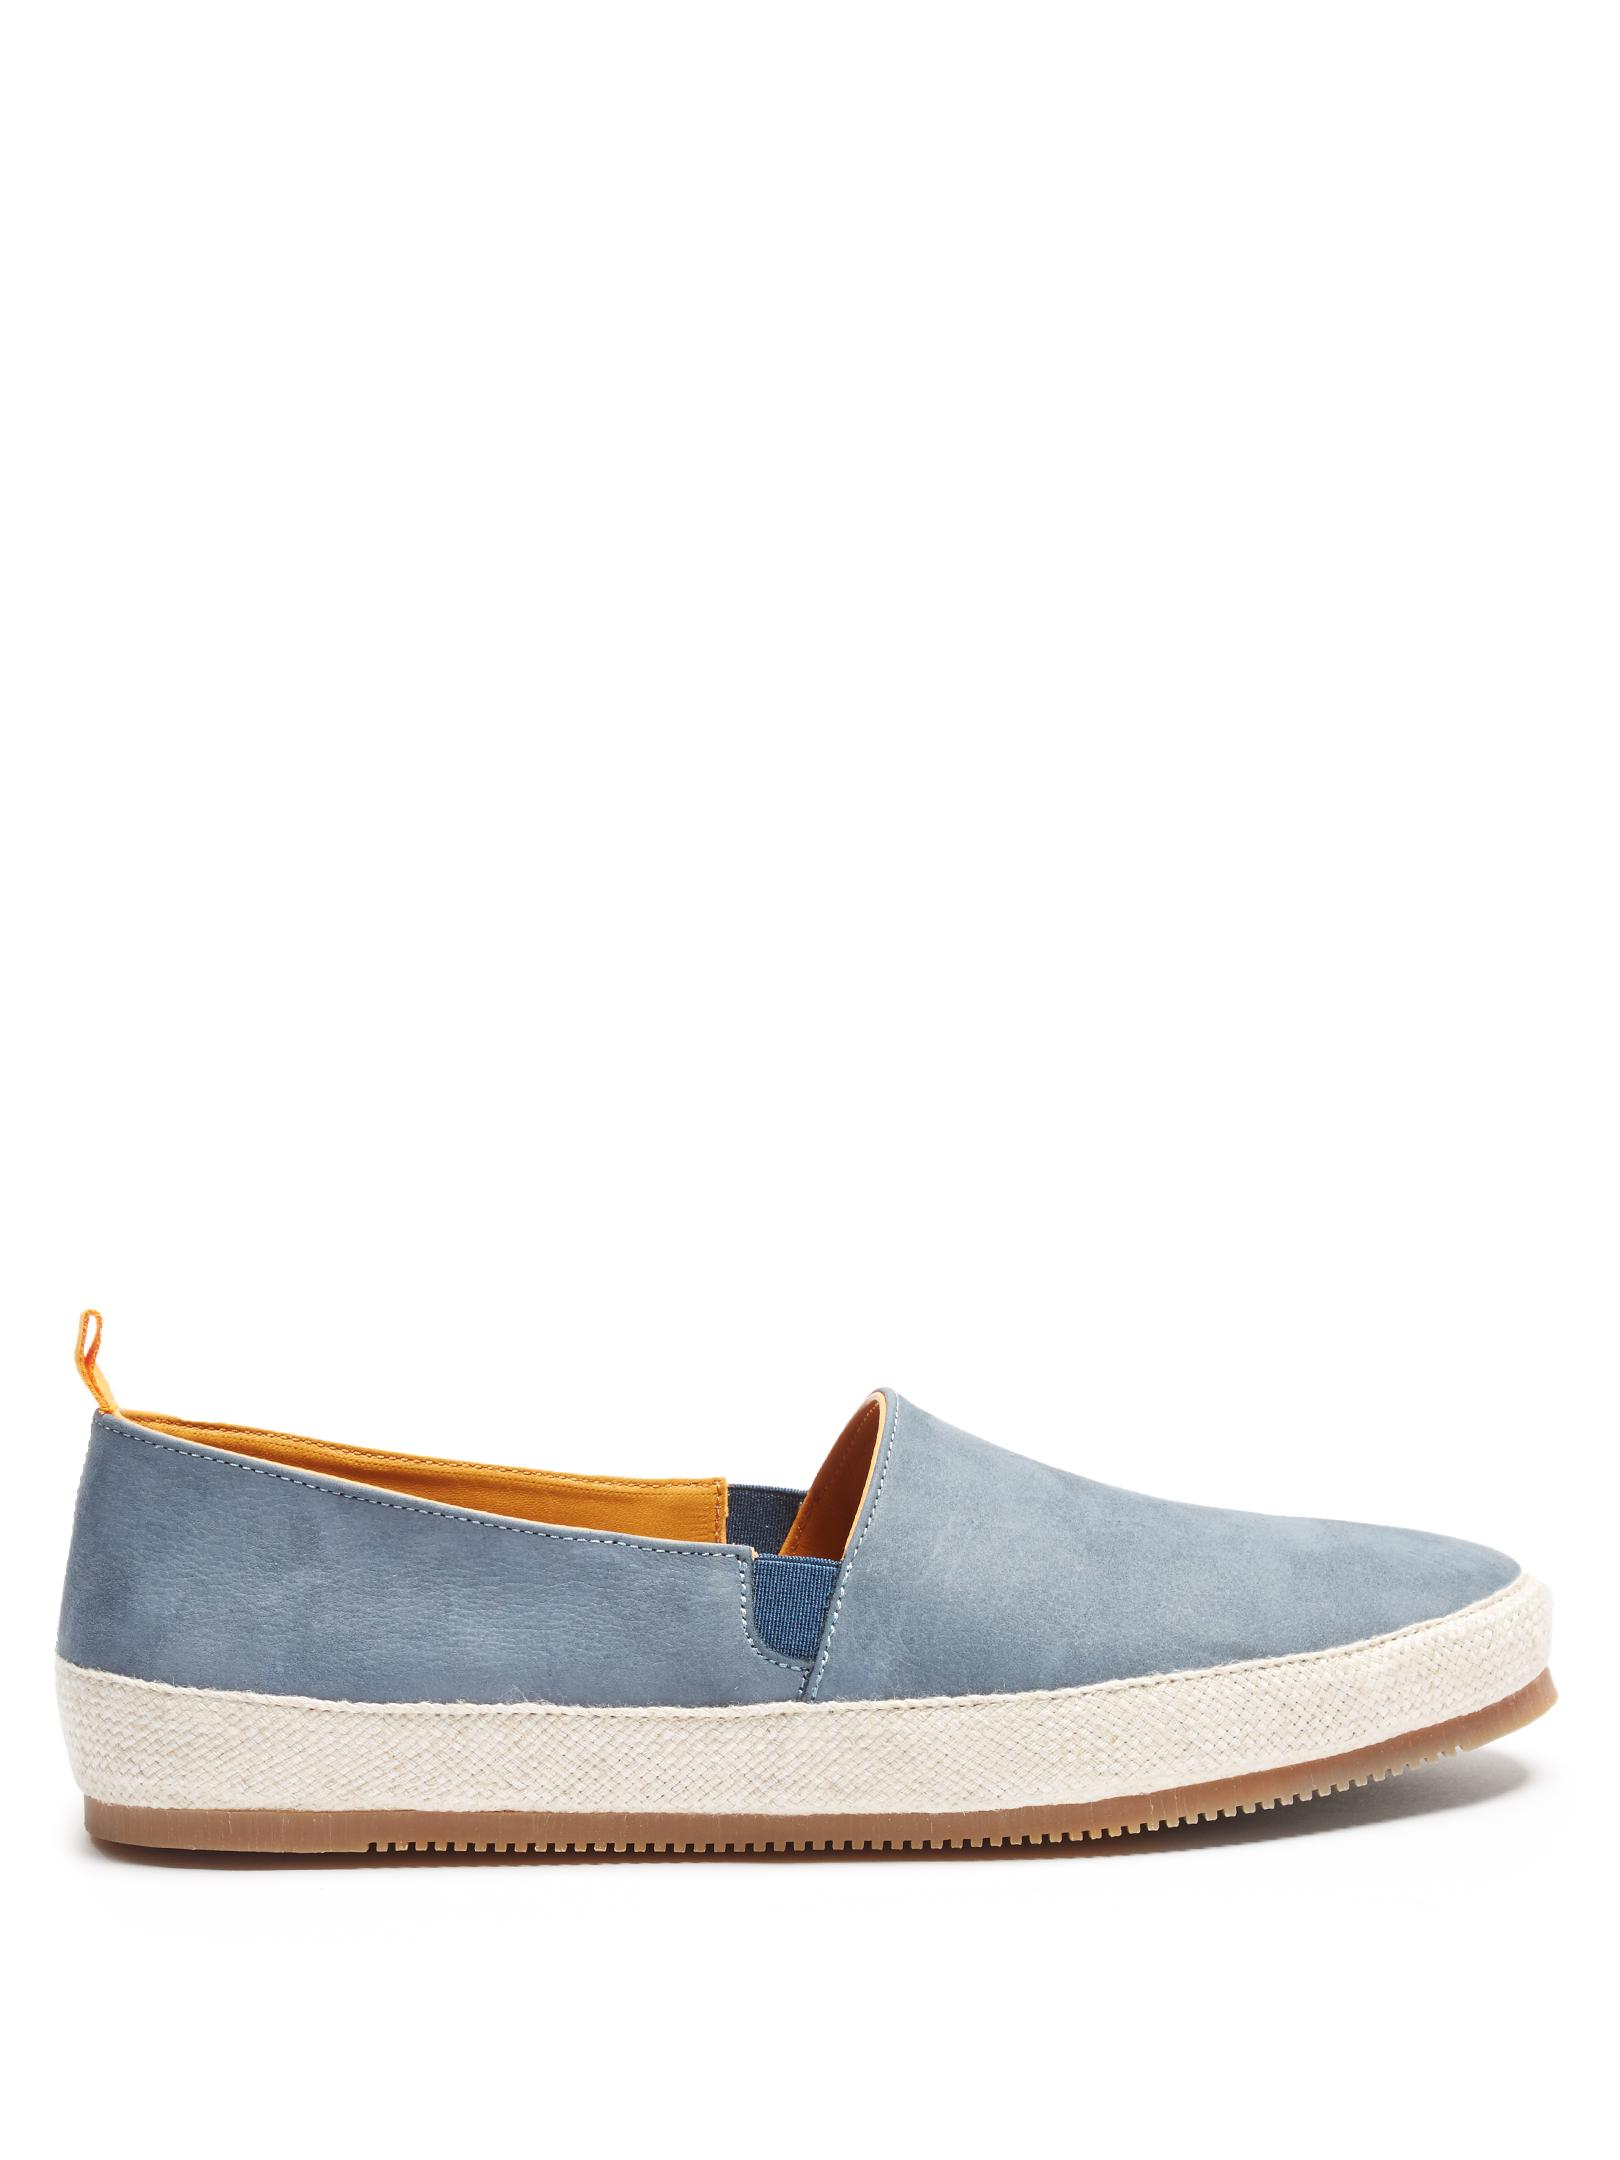 Shearling-lined Suede Slippers - Storm blueMulo TeGF8skZ1